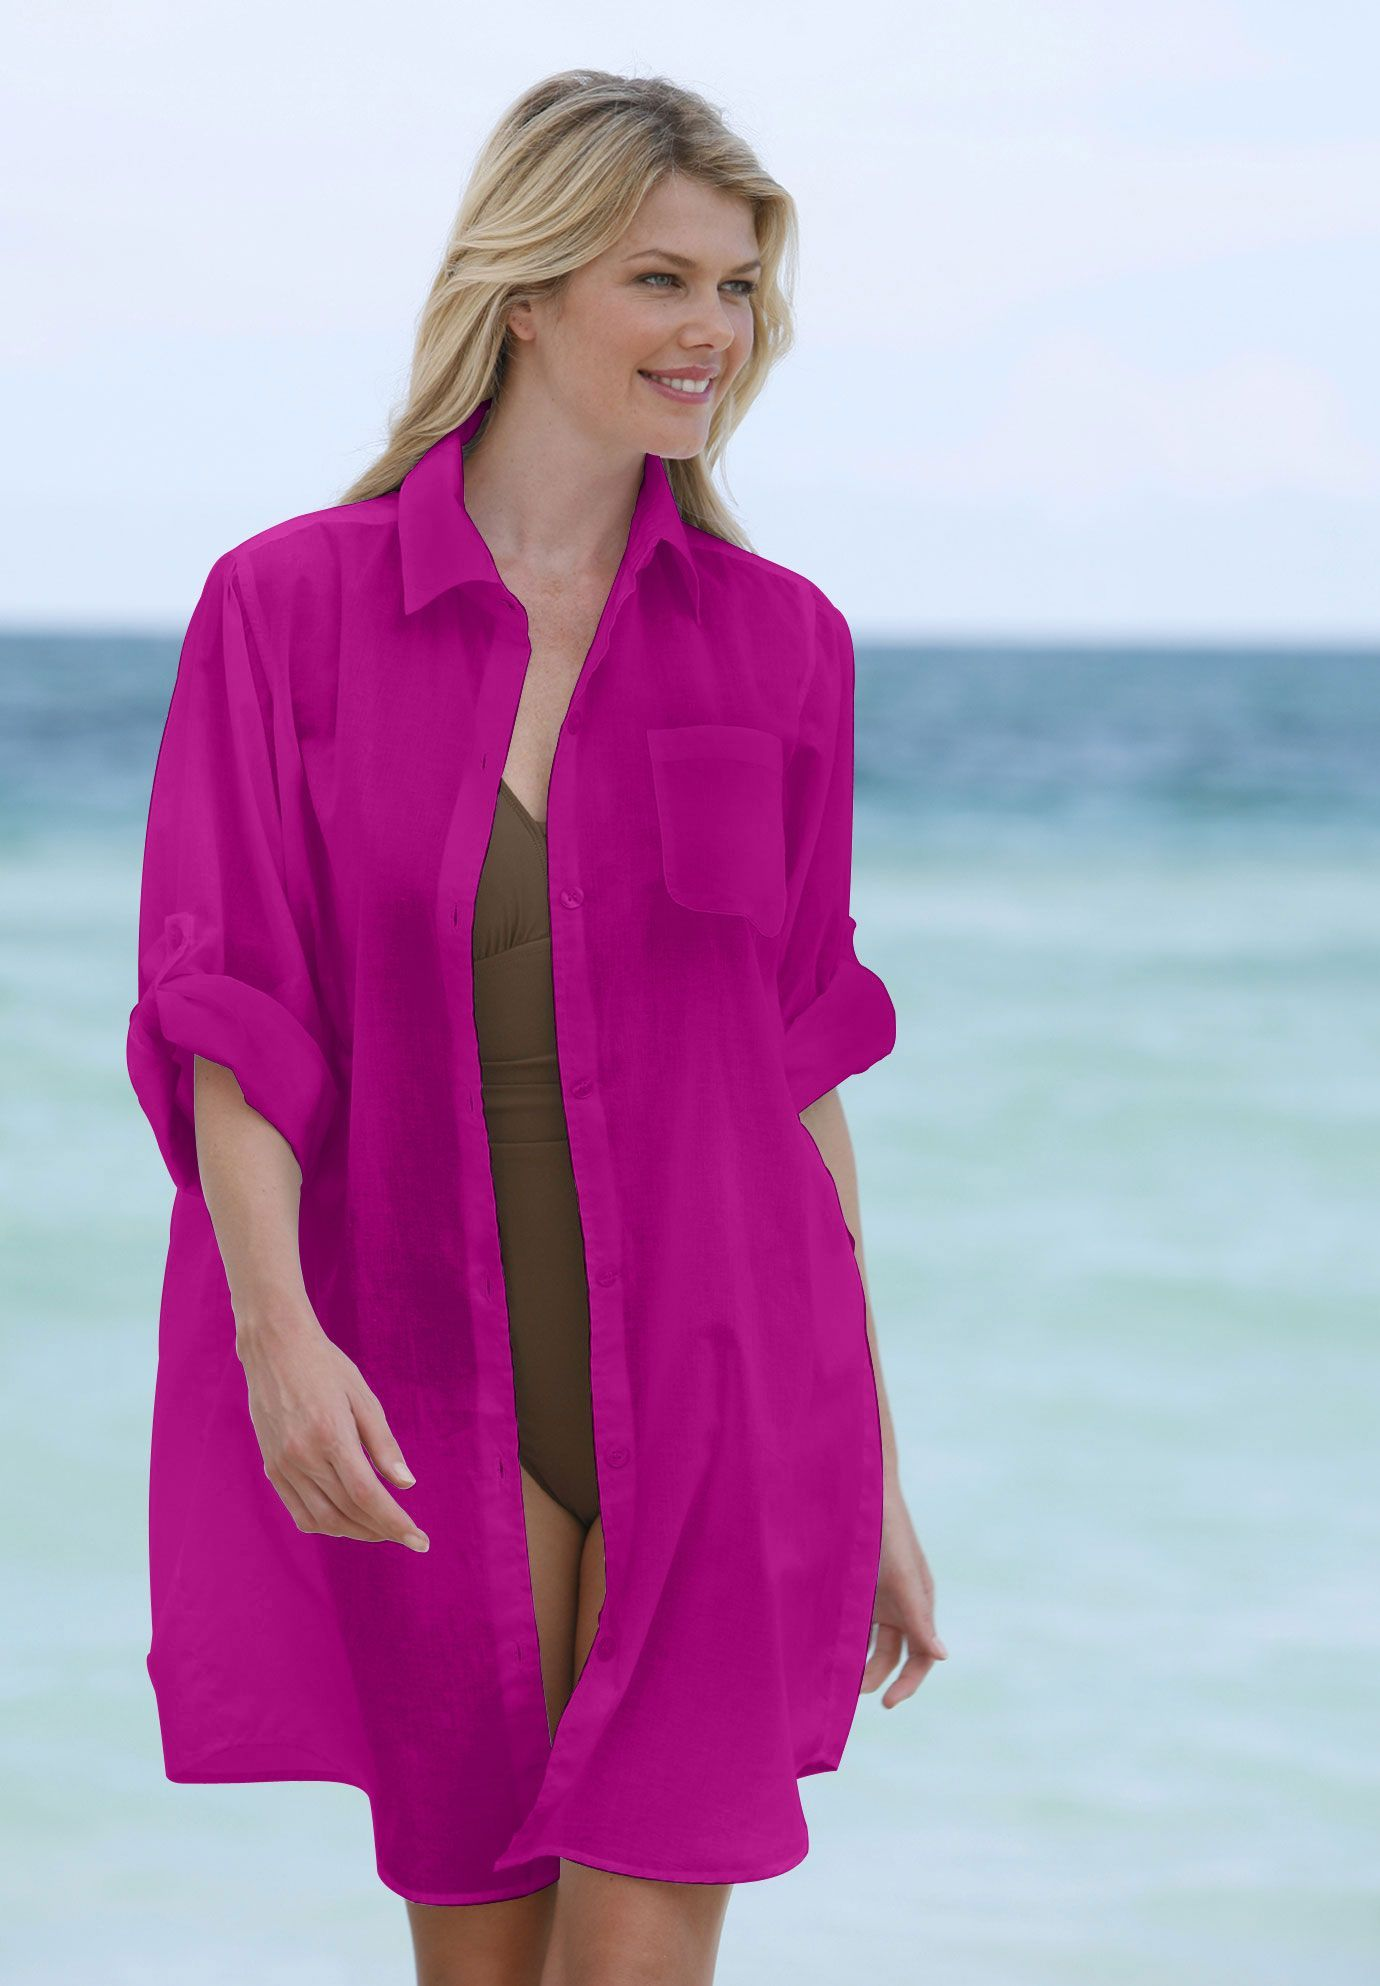 b904c9cff0109 Plus Size Gauze bigshirt cover-up by Resorts Plus® | Plus Size swimsuit  cover ups | Woman Within